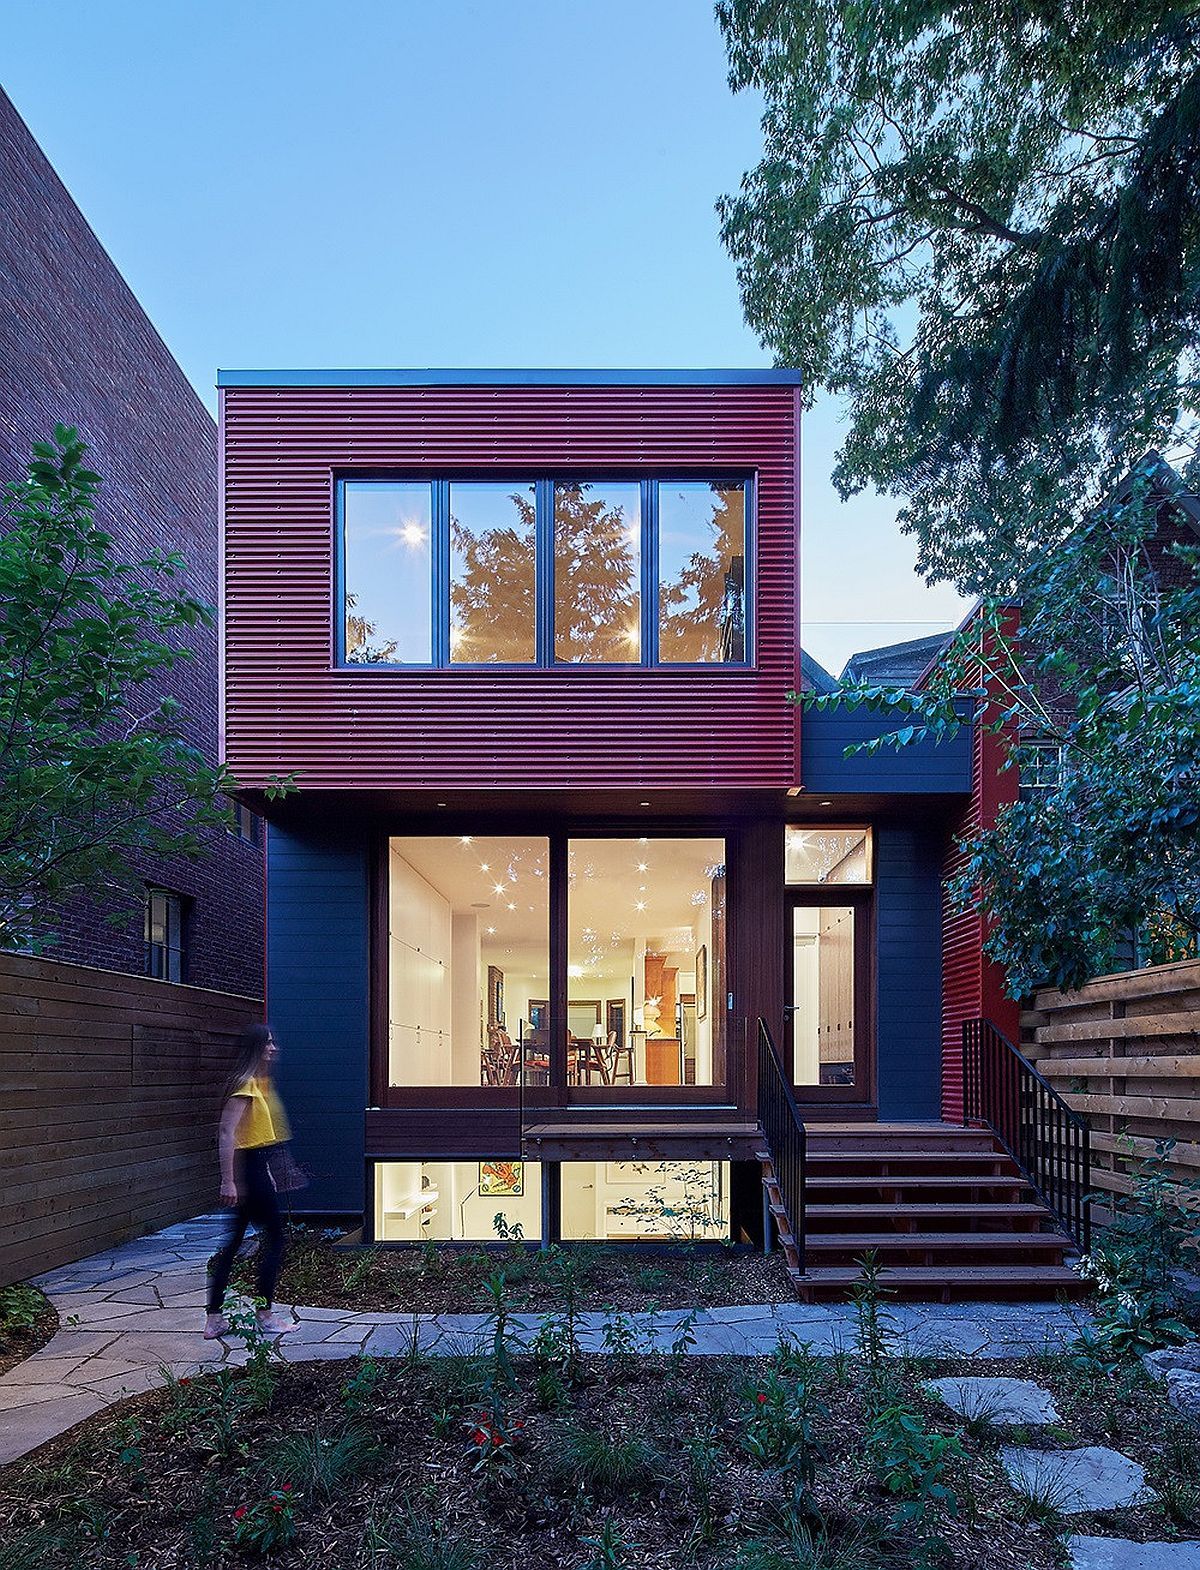 Contemporary-red-exterior-of-the-home-with-dark-gray-and-glass-thrown-into-the-mix-28013